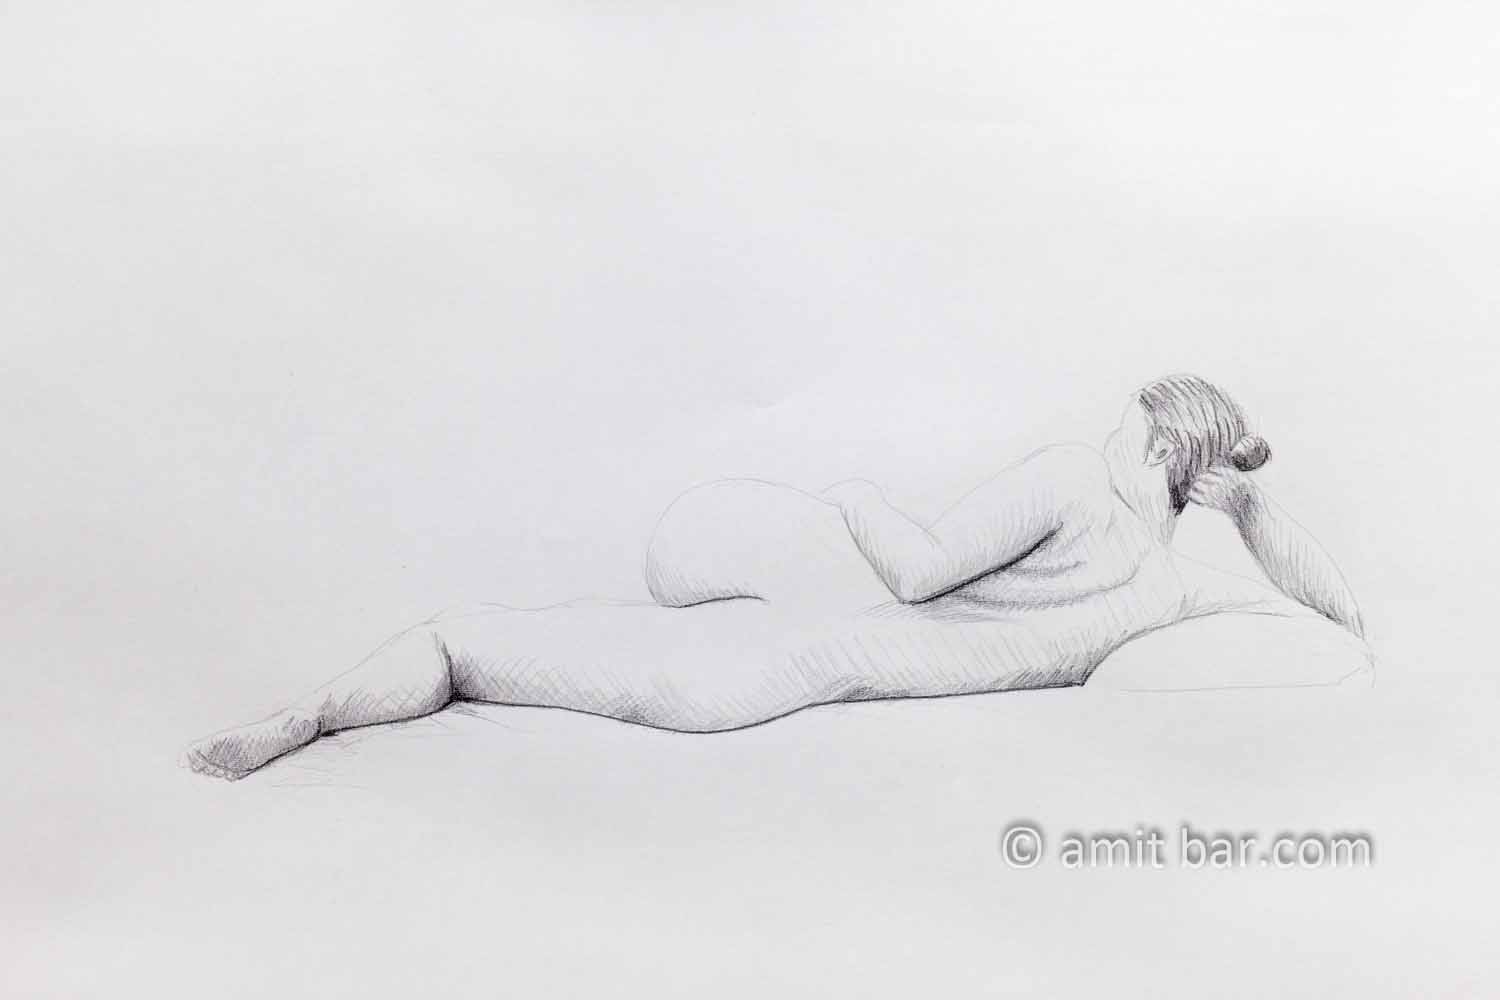 Lying nude model from the back. Pencil drawing